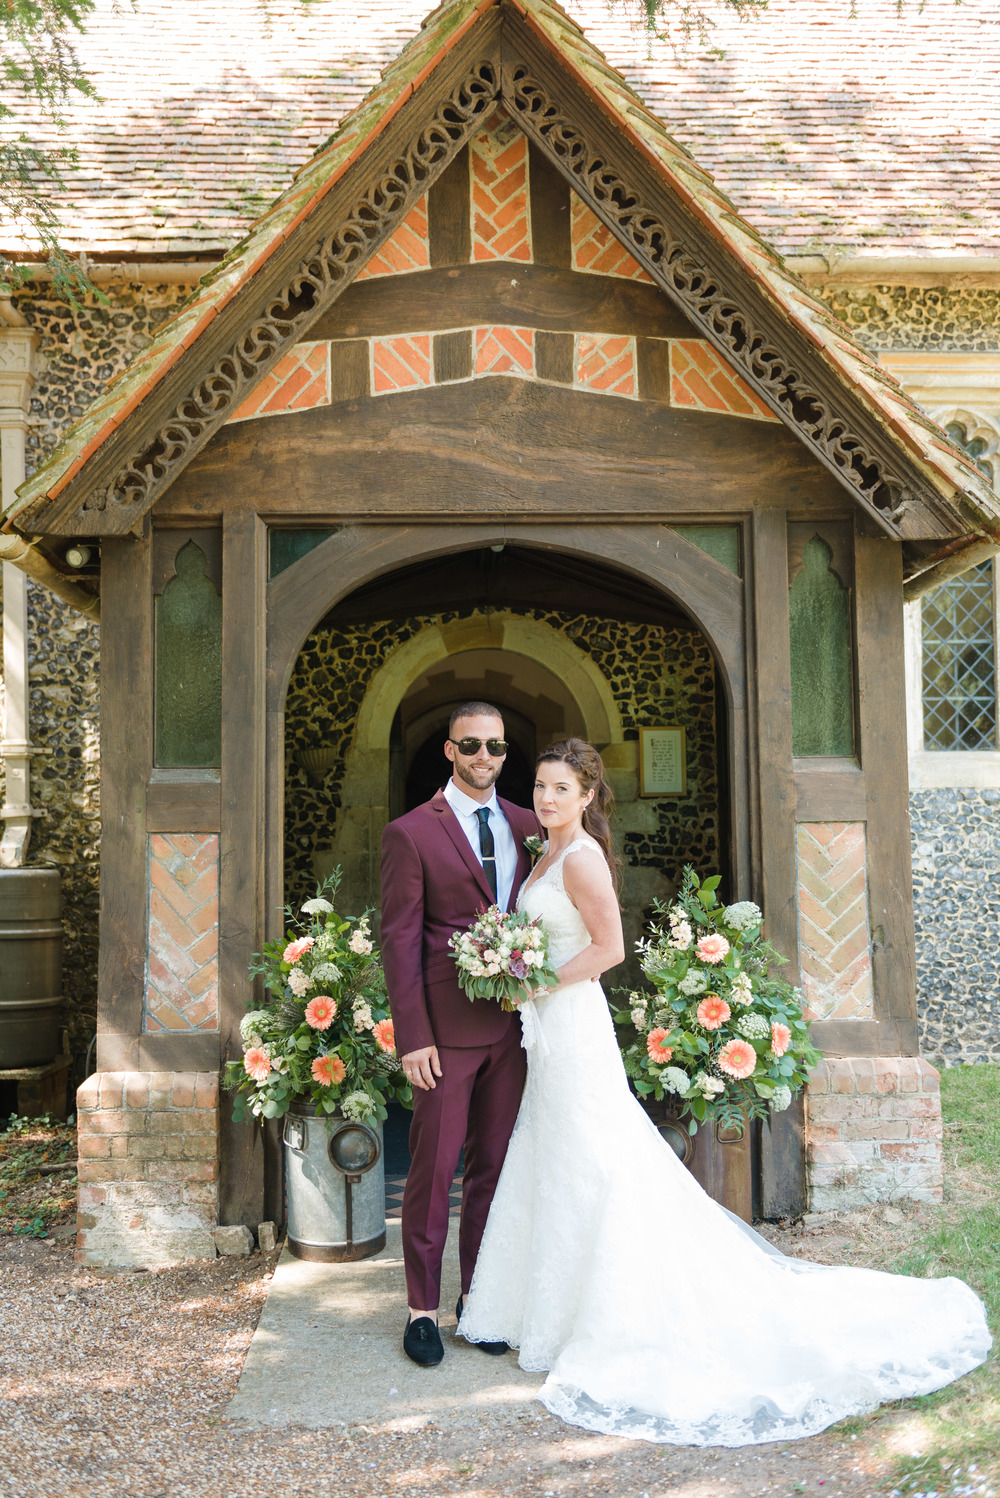 hannah-mcclune-photography-mill-house-hotel-swallowfield-rustic-wedding-burgundy-and-peach-wedding-37